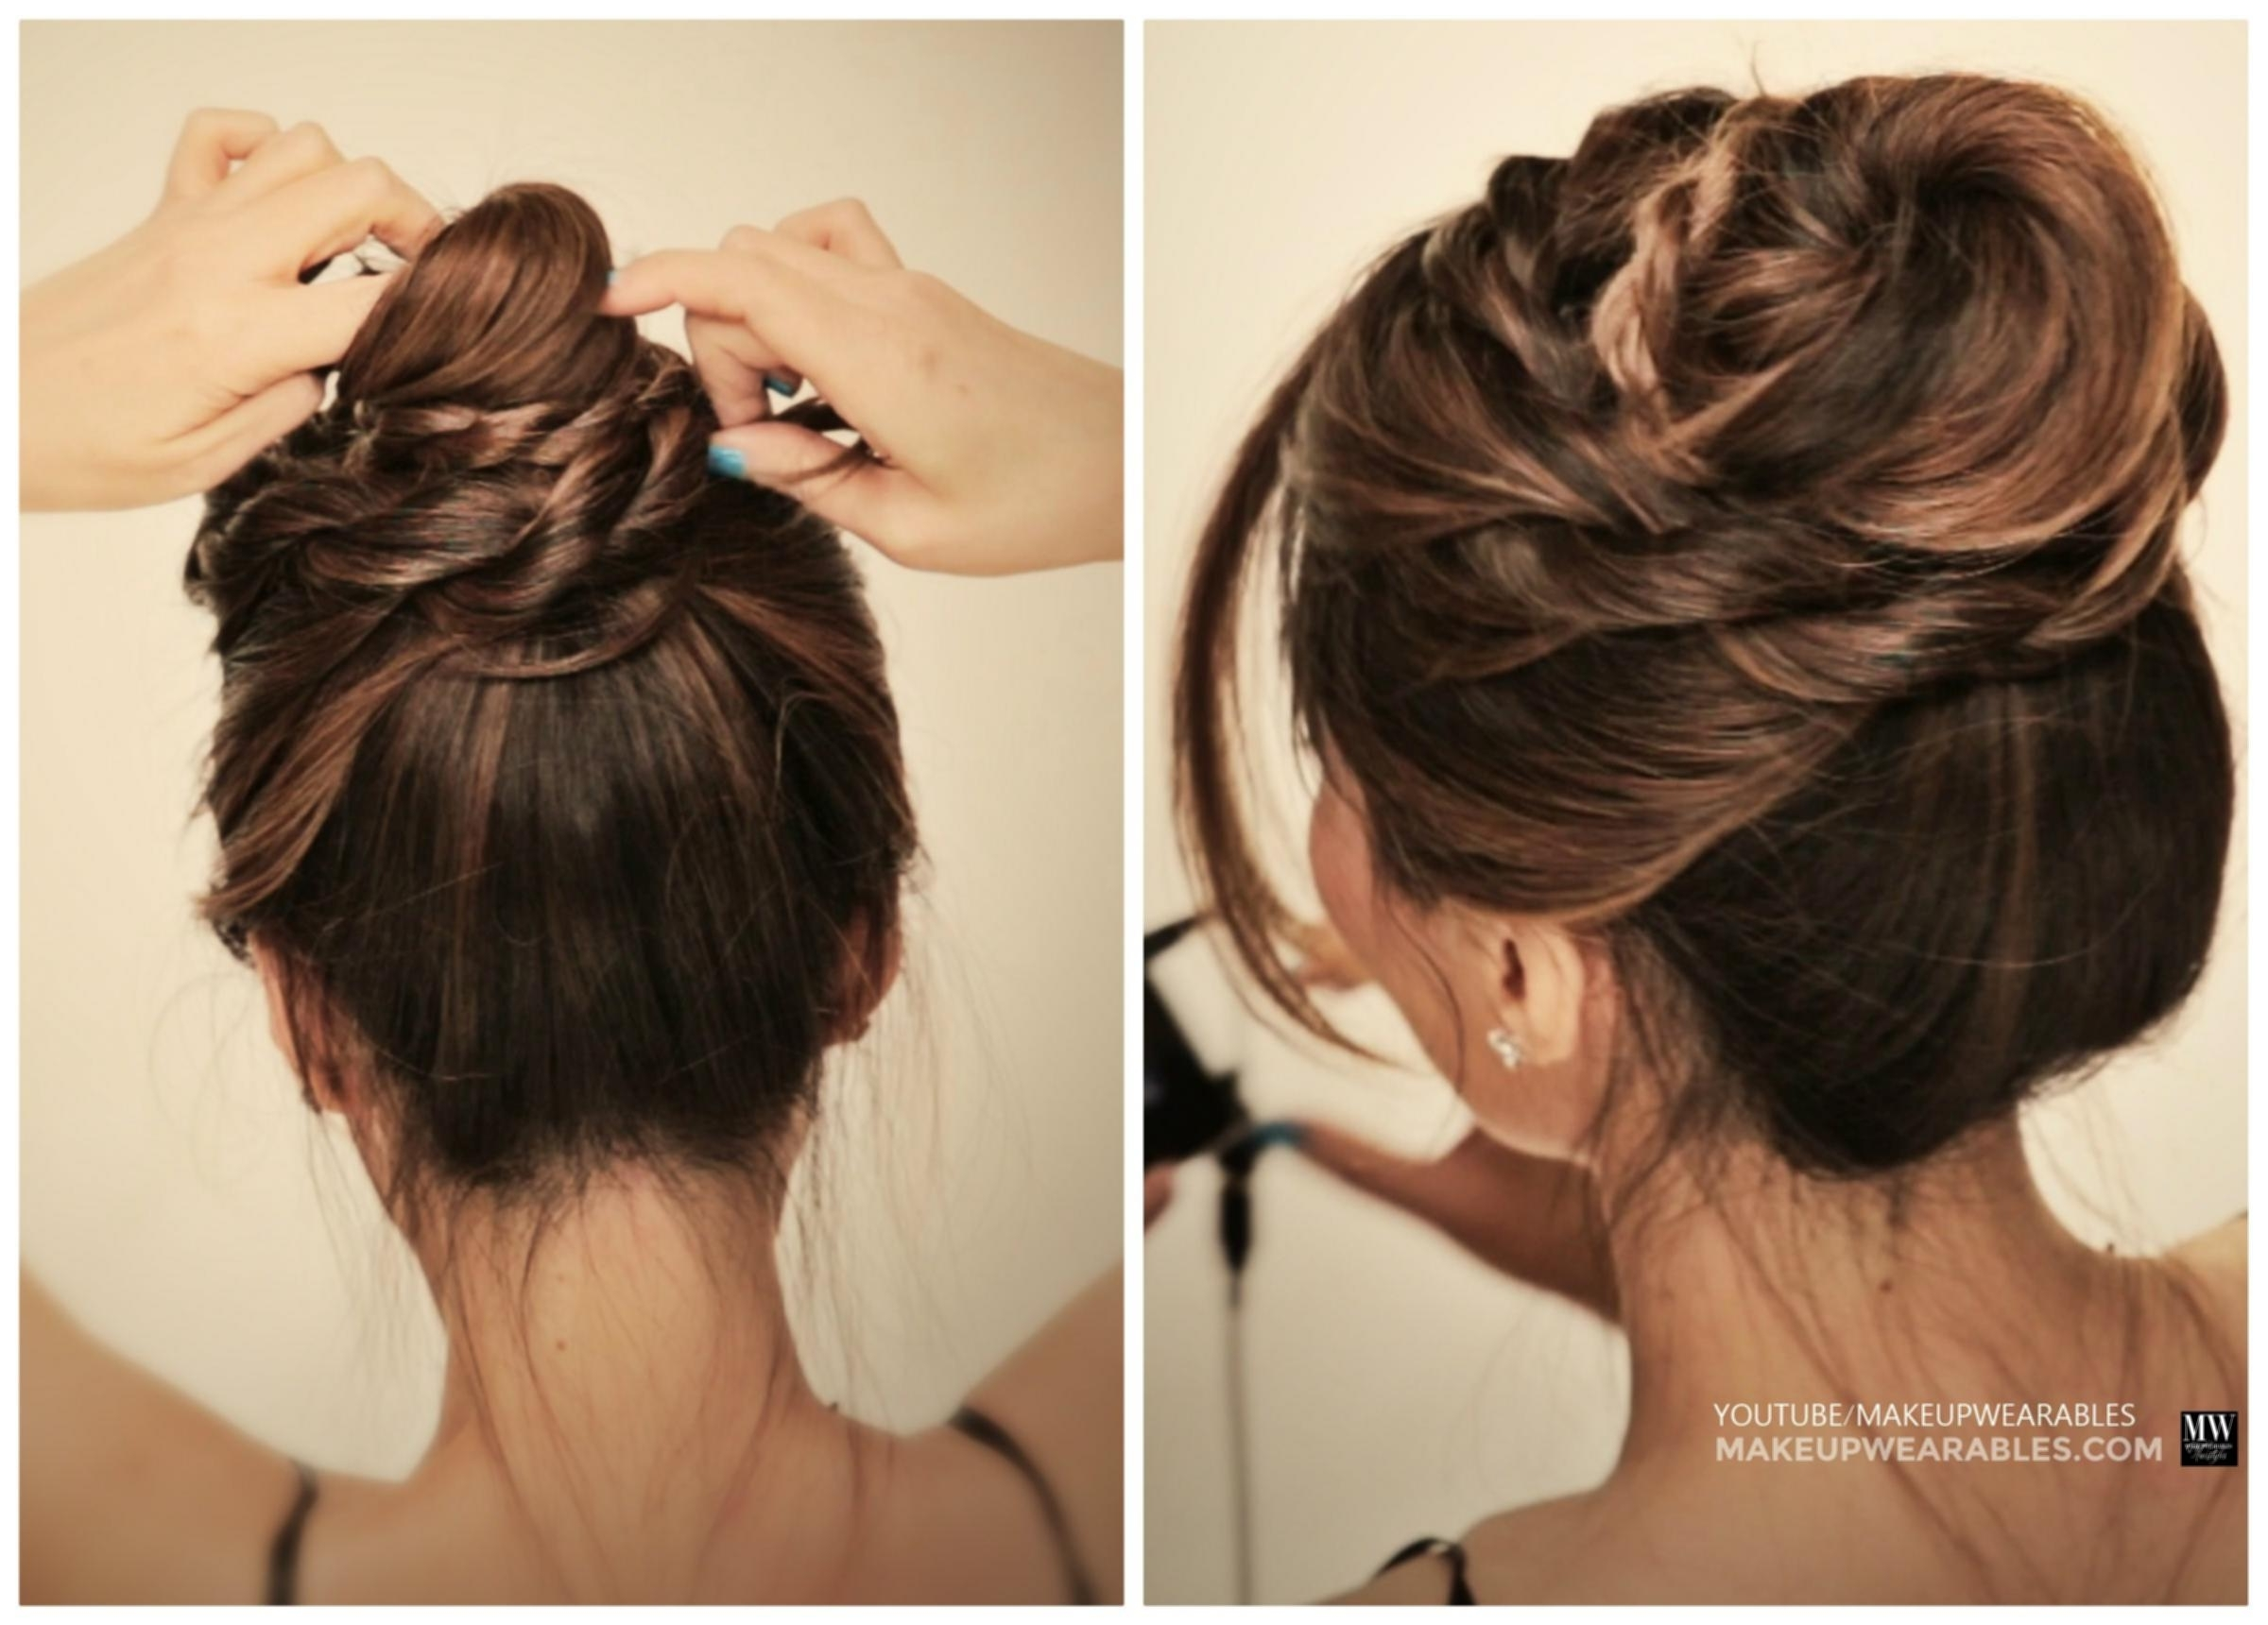 Quick Cute Messy Hairstyles Cute Messy Bun Braids Ballerina Twisted Pertaining To Quick Twist Updo Hairstyles (Gallery 13 of 15)